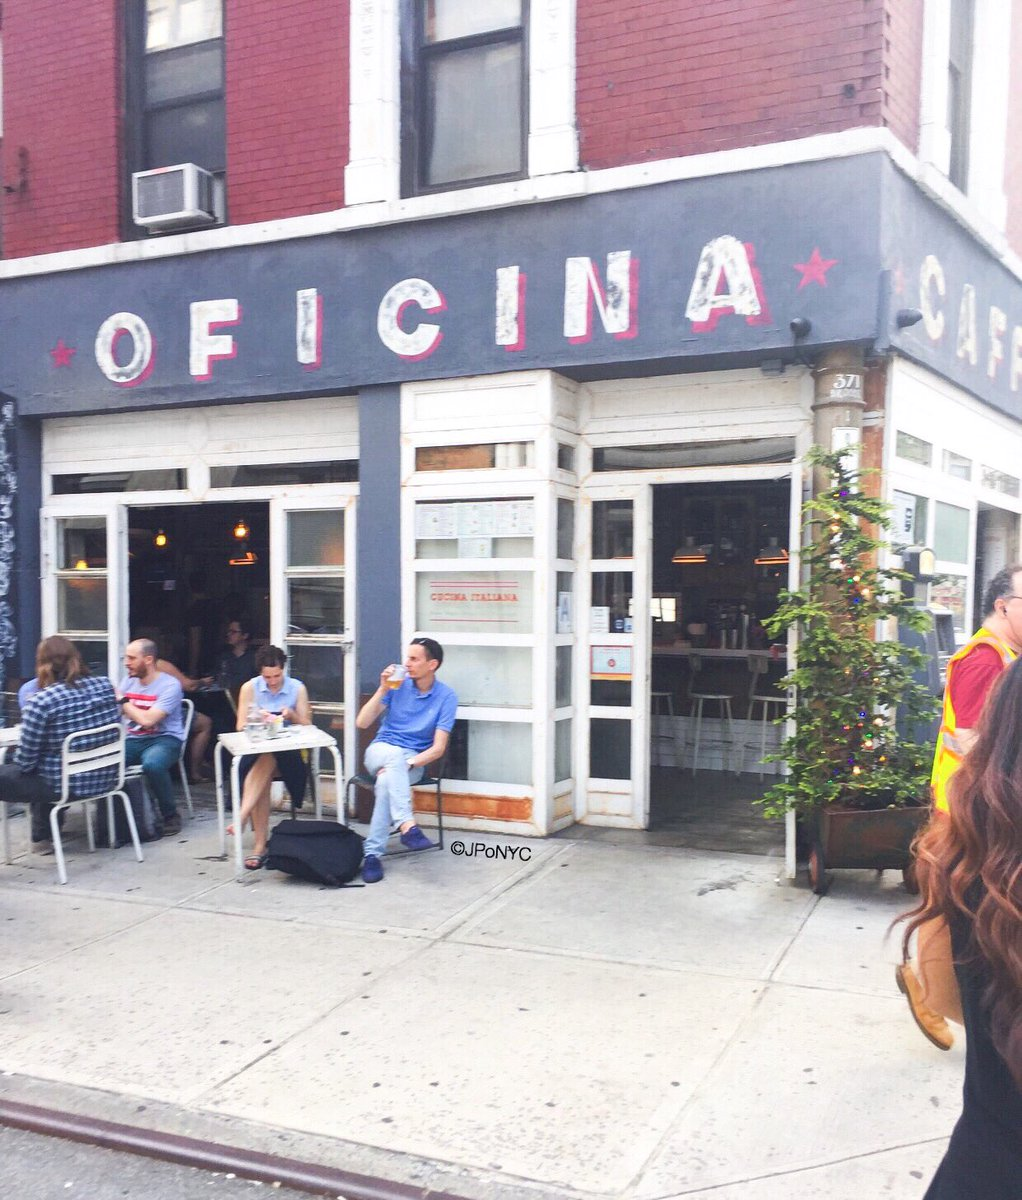 My #oficina for the rest of this Friday! @laoficinanyc #oficinalatinacafe #shabbychic #eatery #panamerican #argentinianfeel #soho #NYC<br>http://pic.twitter.com/hSgJCjRa6P